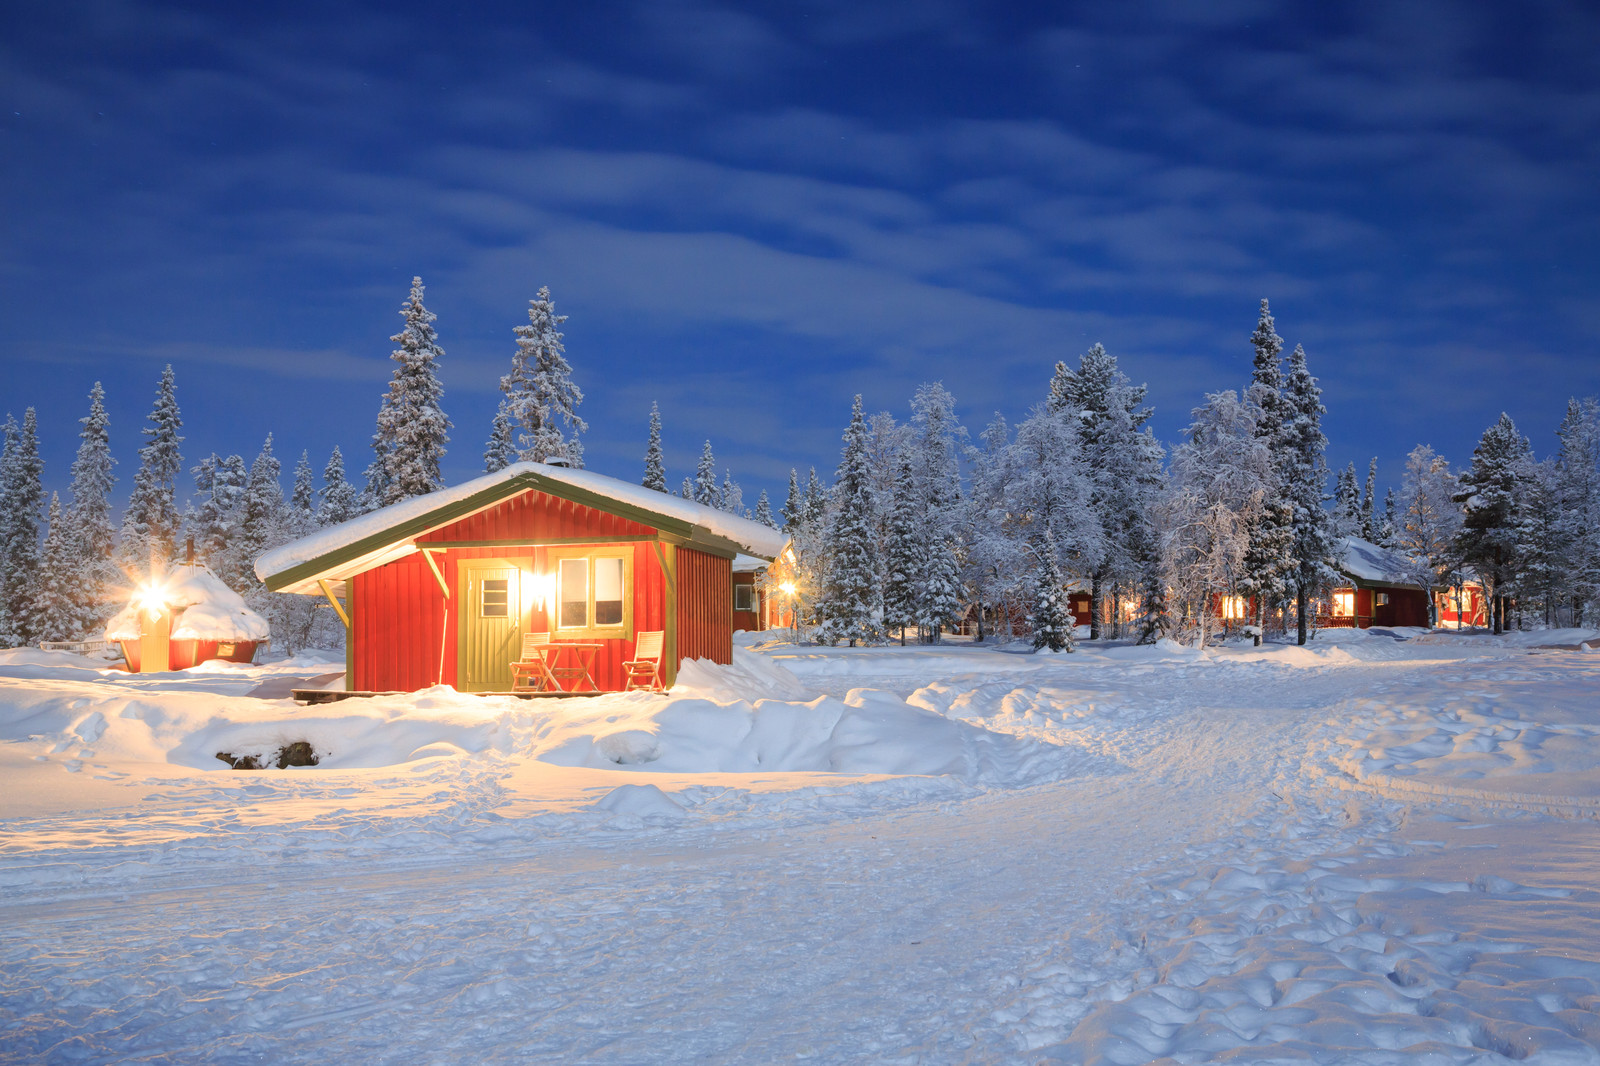 Lapland Wallpapers High Quality Download Free